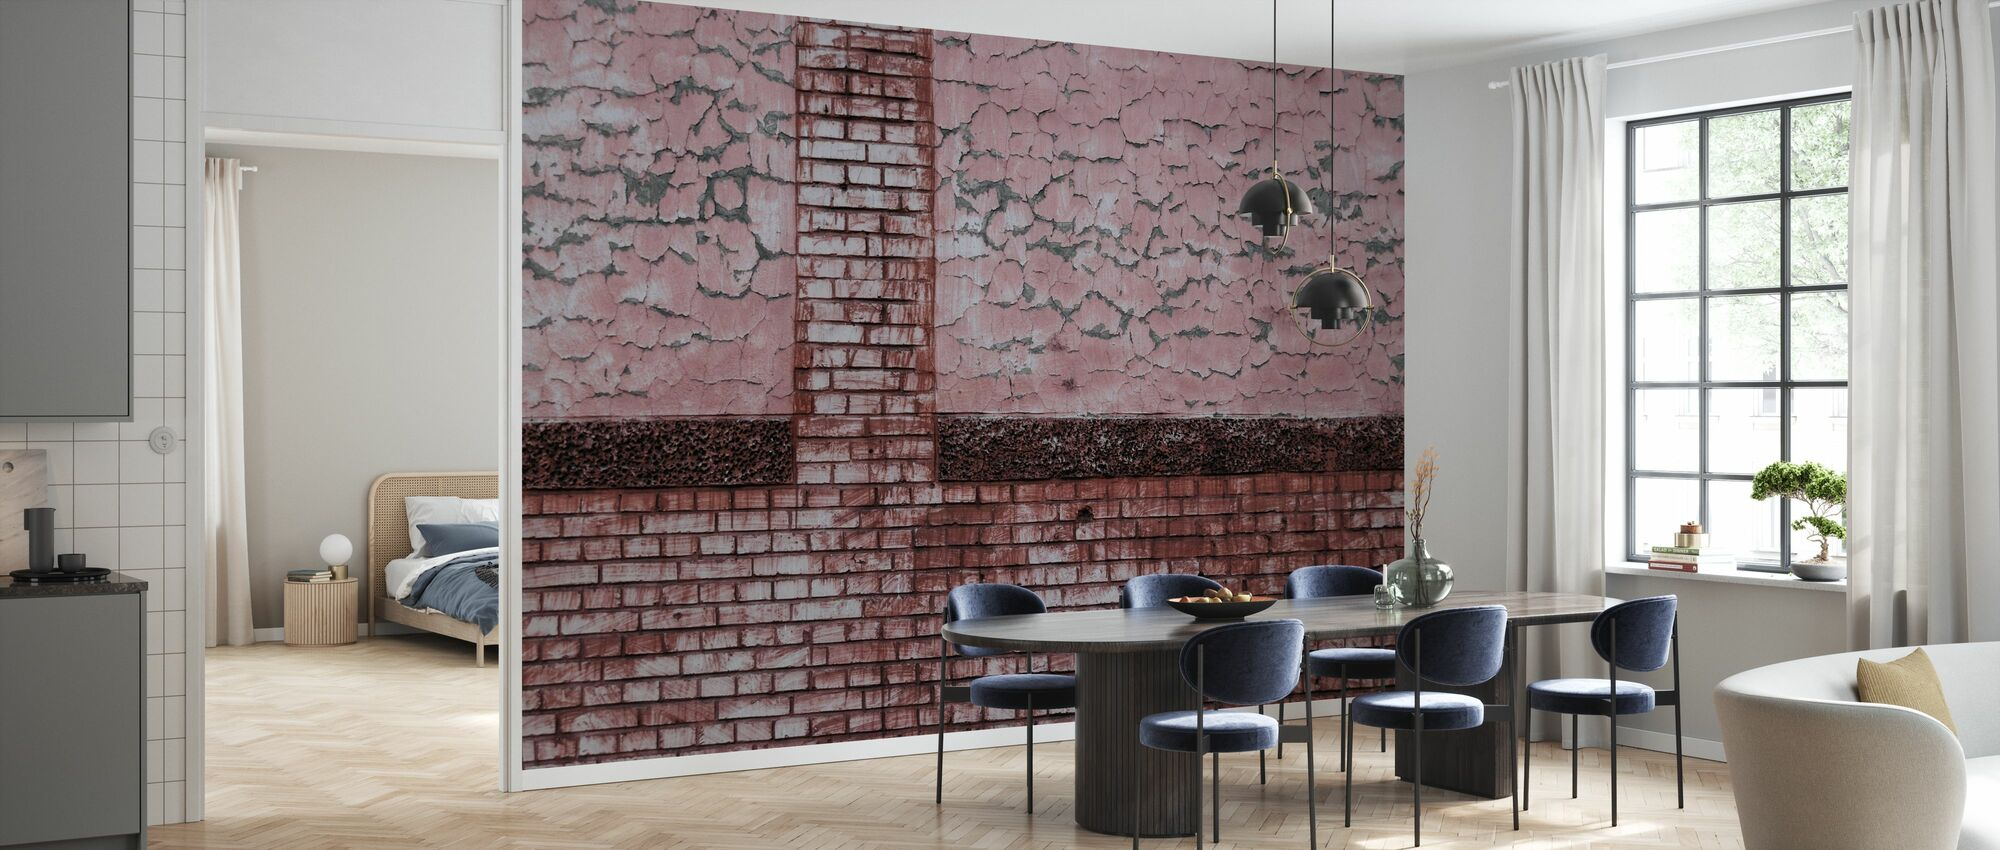 Bricks and Pattern - Wallpaper - Kitchen